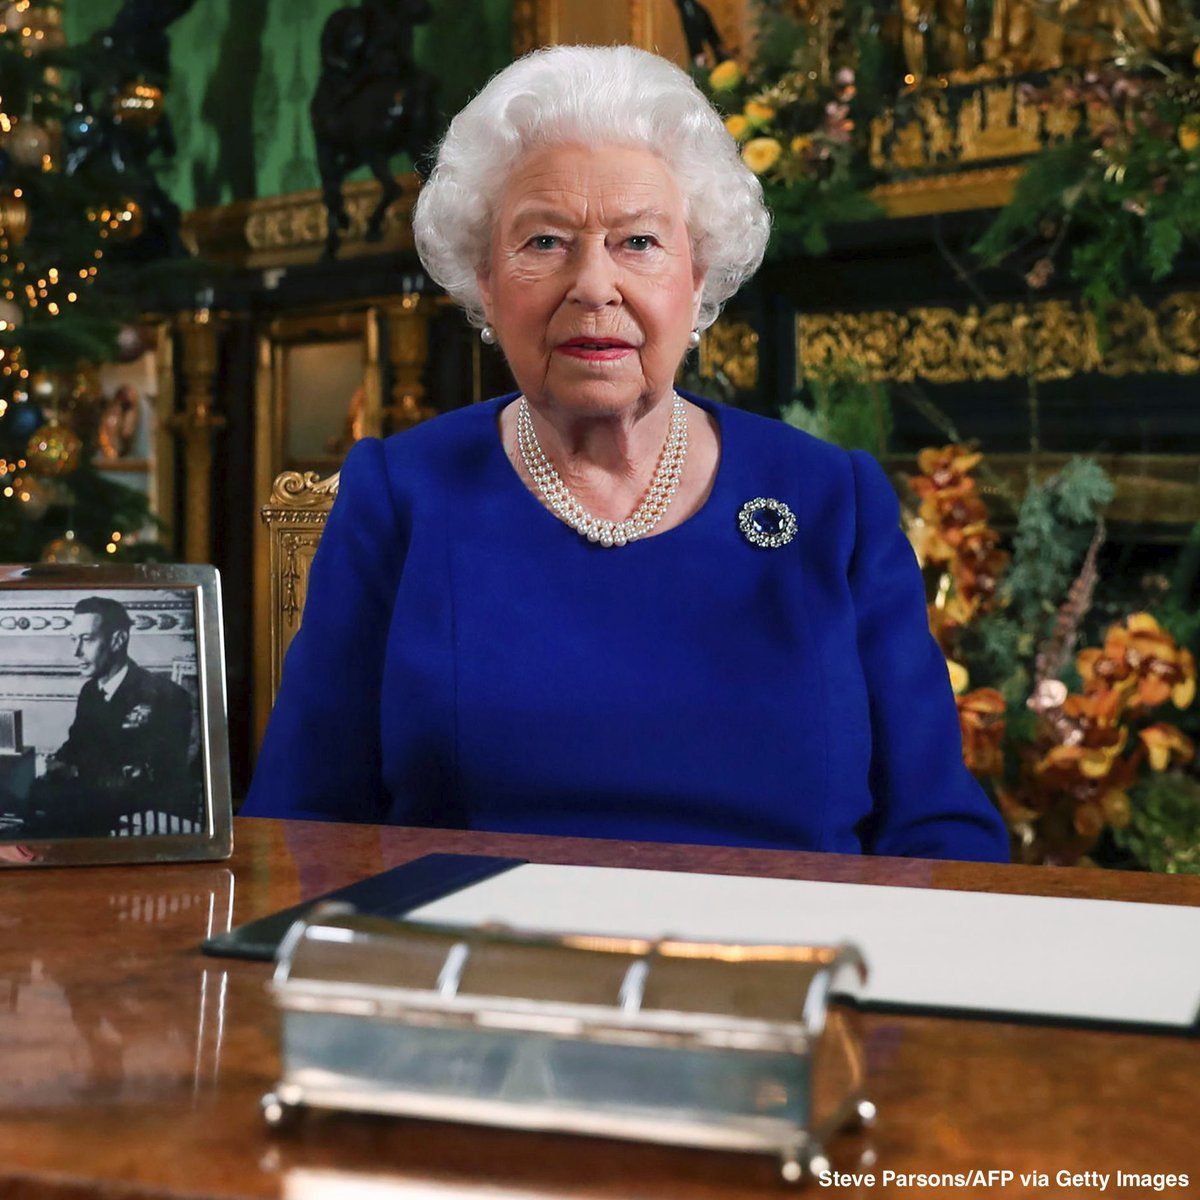 Queen Elizabeth II has recorded a special broadcast to the U.K. The televised address will be broadcast Sunday at 8 p.m. local time.  It will be just the fourth time in the queen's 68-year reign that she has delivered a special address to the nation.